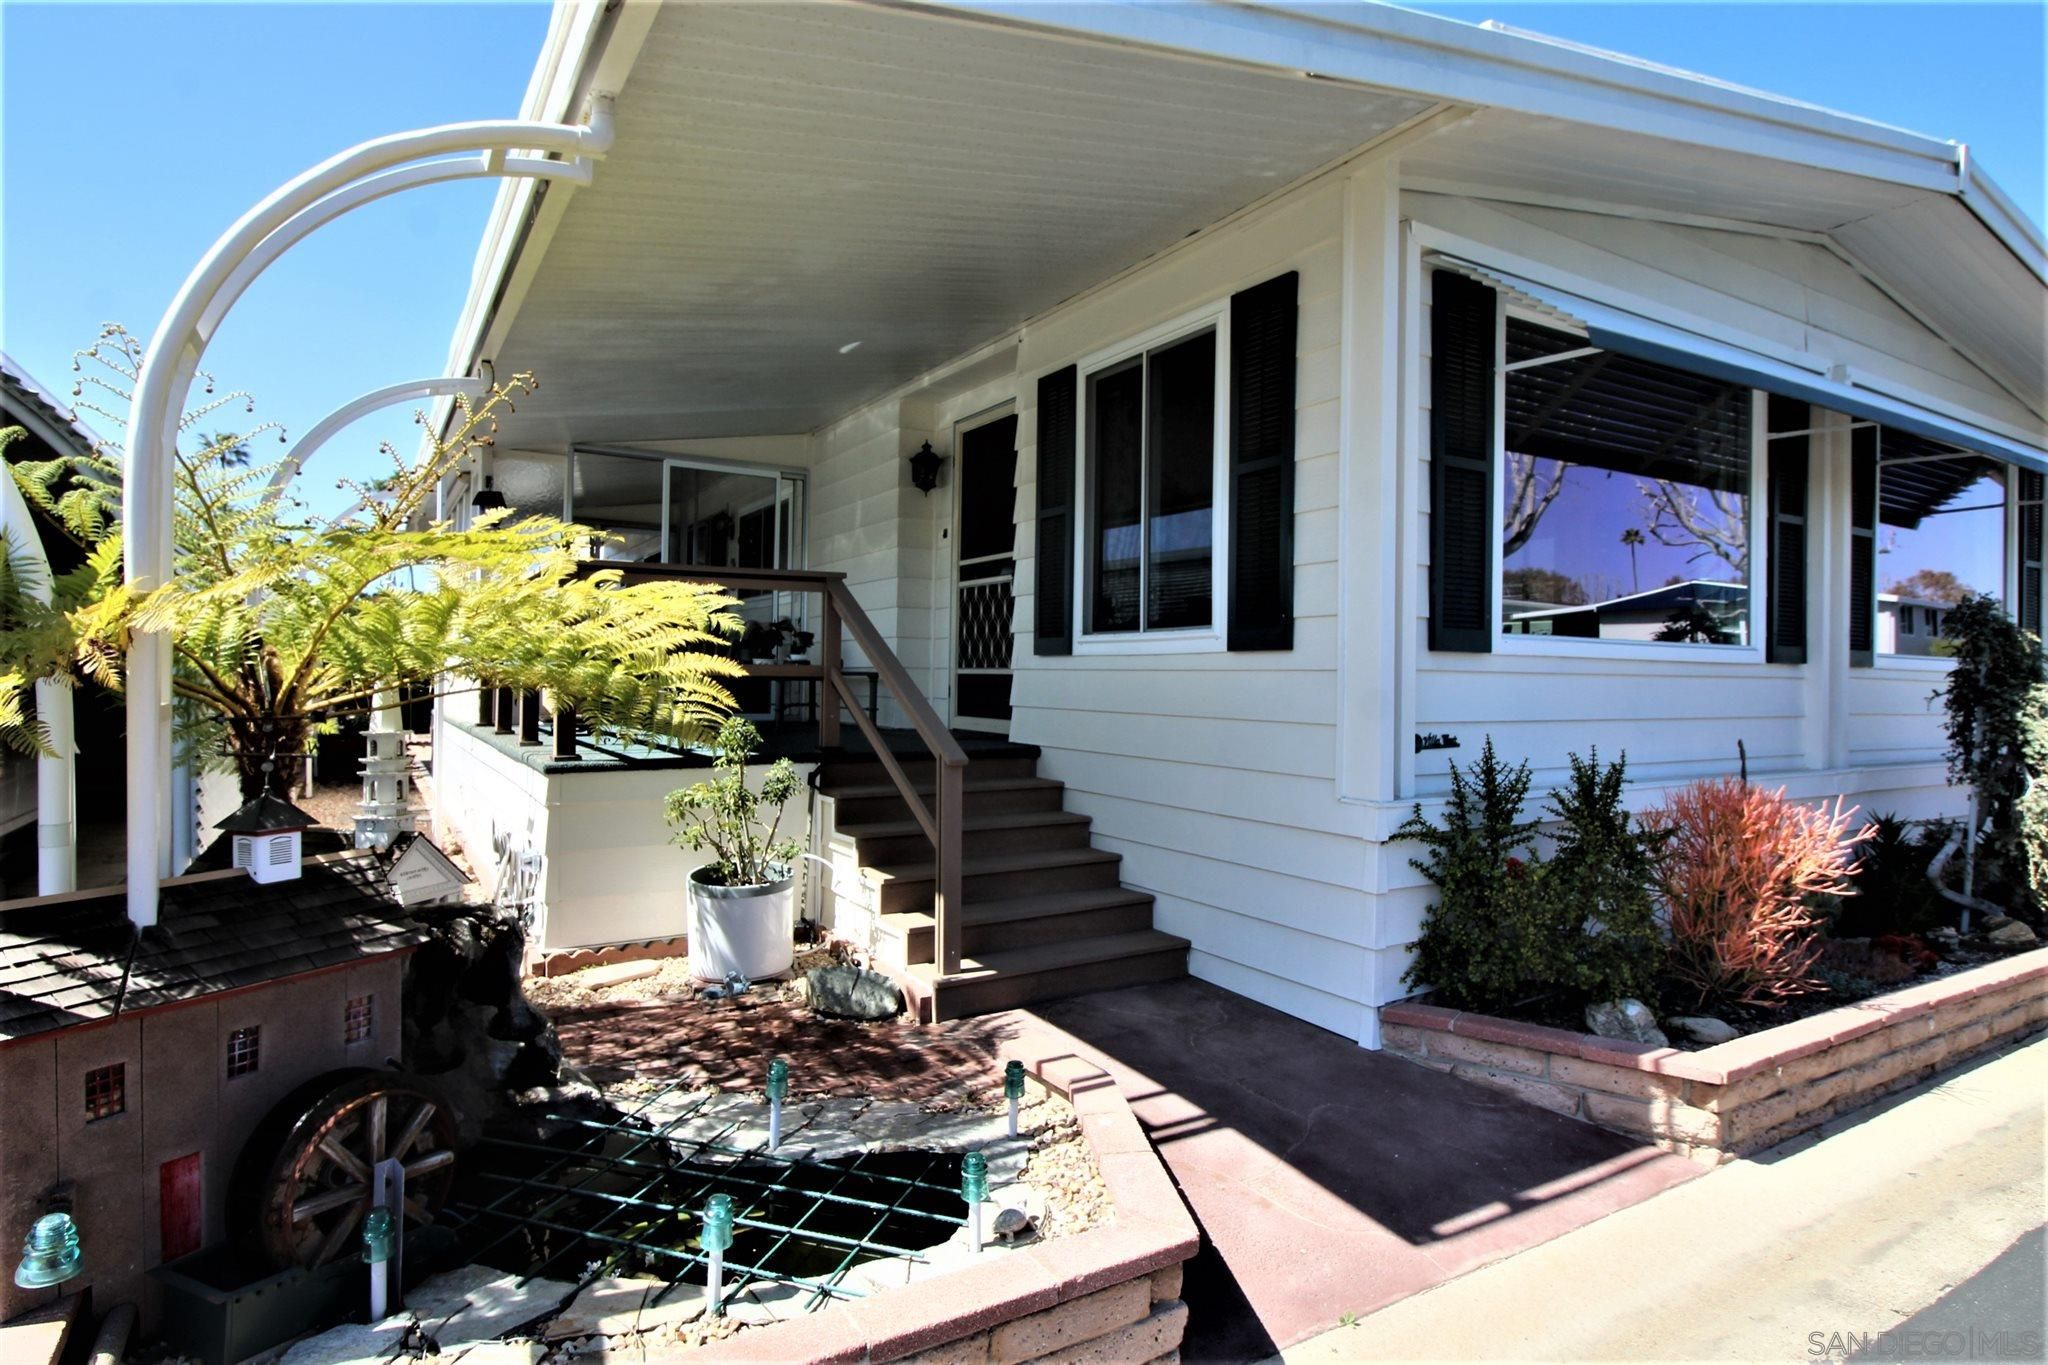 Main Photo: CARLSBAD WEST Mobile Home for sale : 2 bedrooms : 7219 San Miguel #260 in Carlsbad